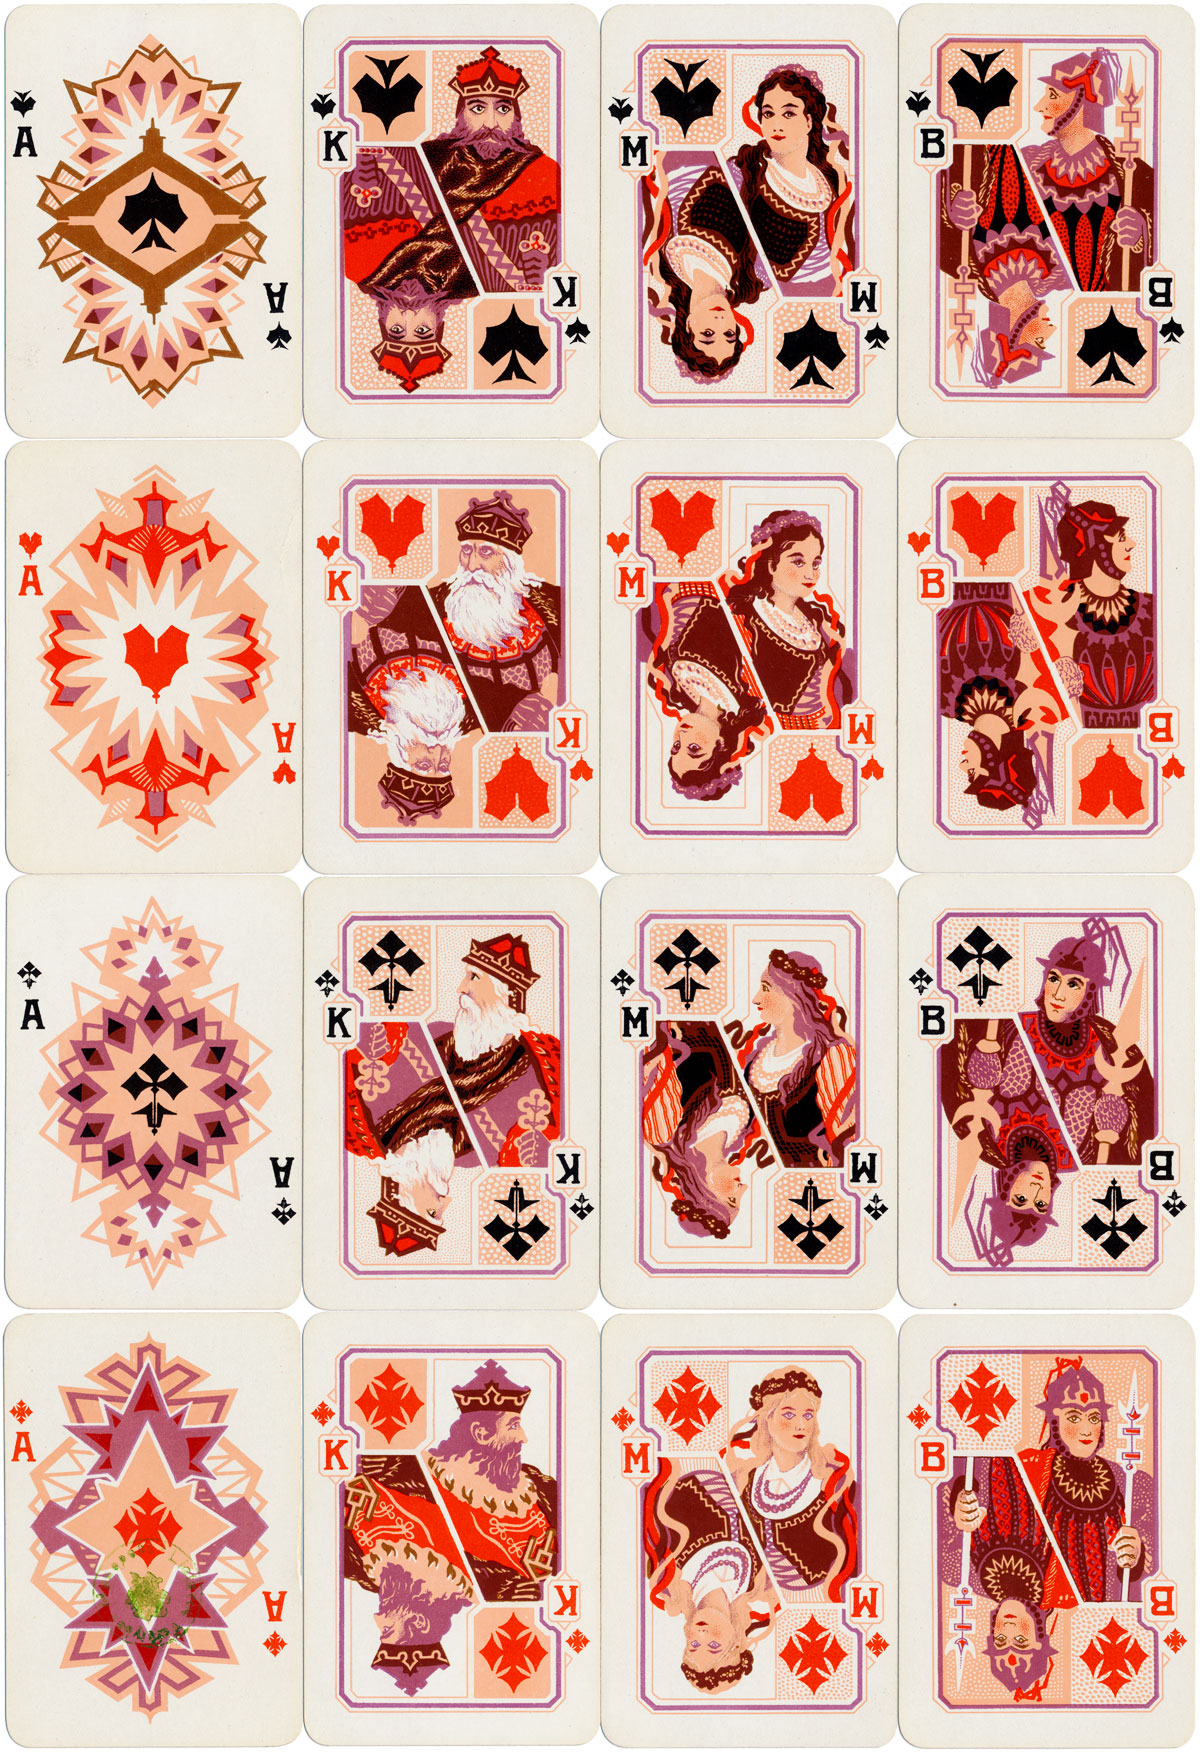 Gedimino Stulpai playing cards made by Spindulys Printing Co., c.1930